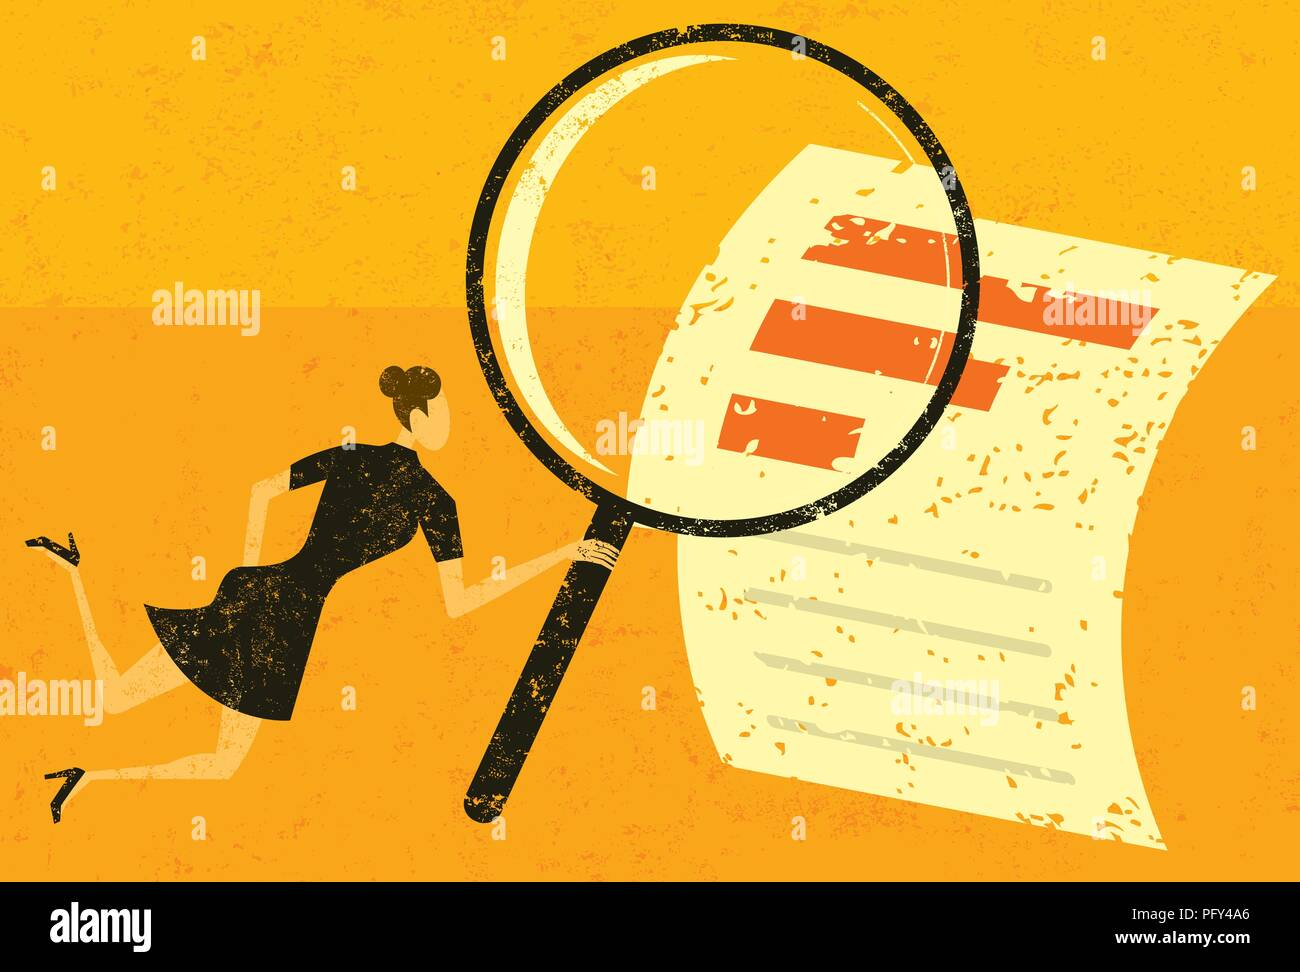 Examining Financial Data. A woman looking through a magnifying glass at a financial document over an abstract background. - Stock Vector